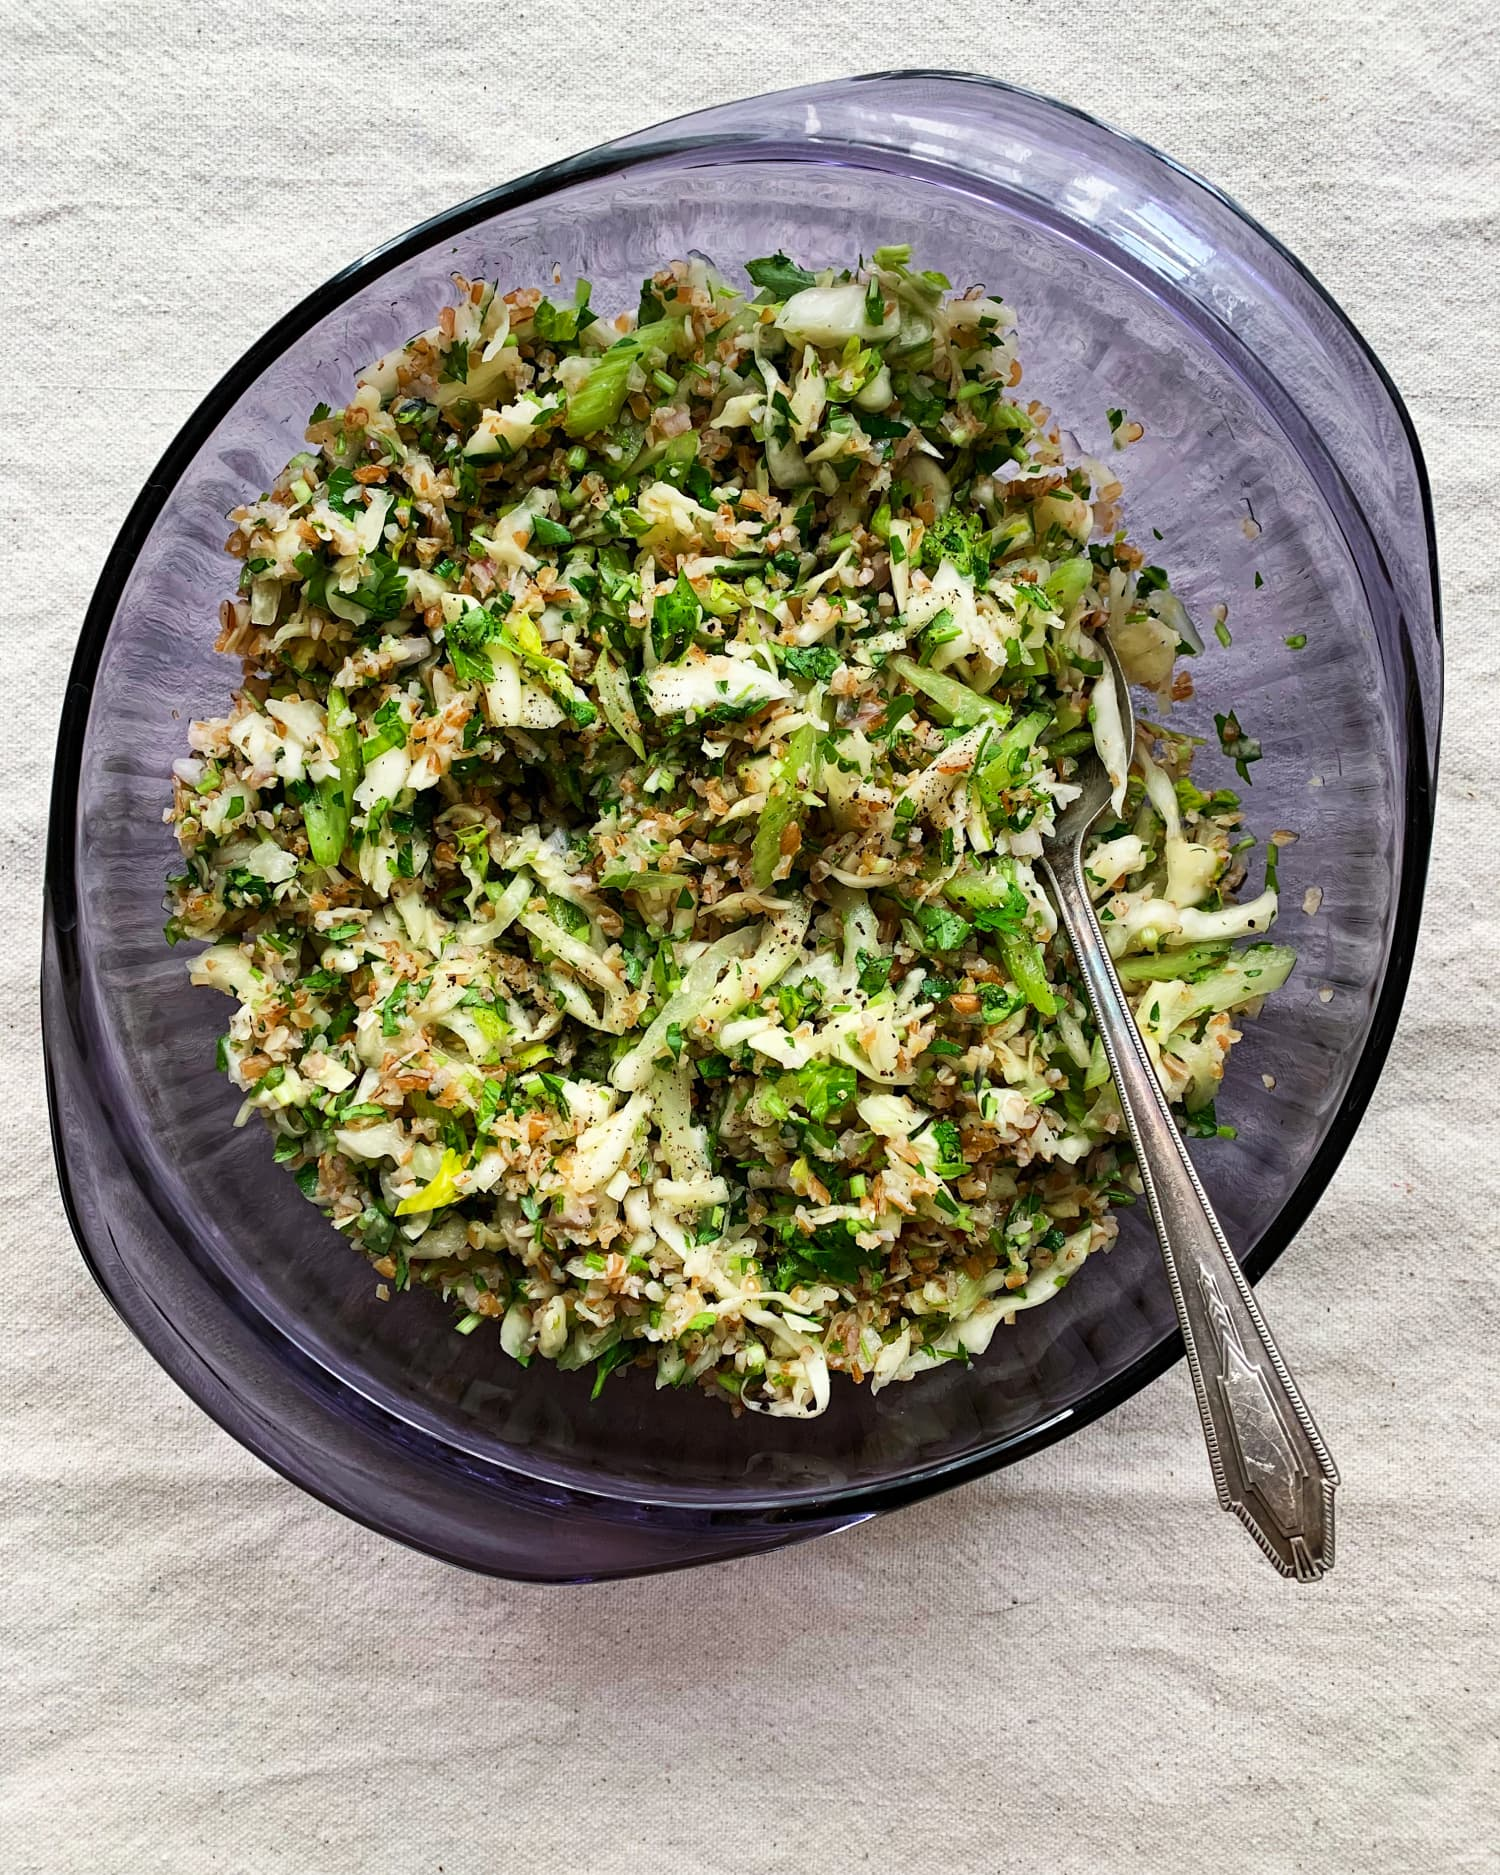 This No-Wilt Cabbage Tabbouleh Is the Perfect Work-from-Home Lunch